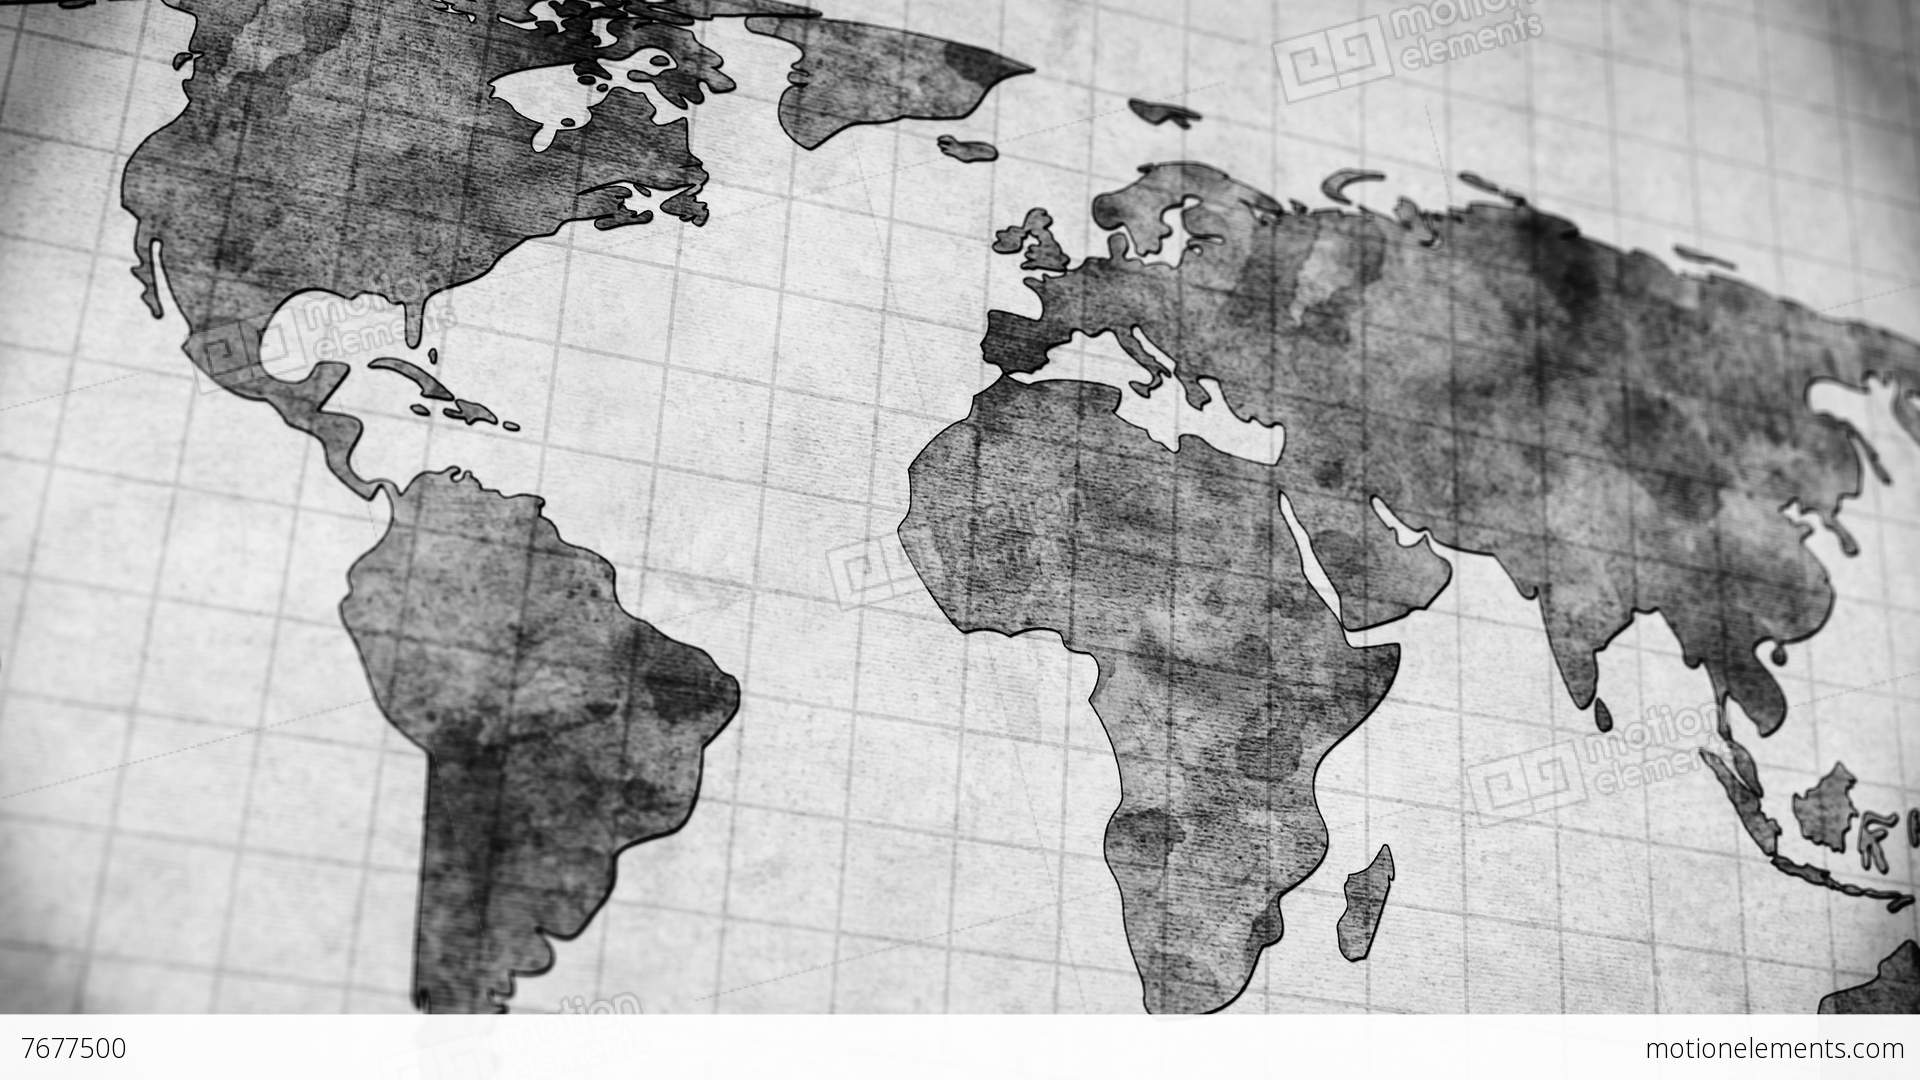 Vintage world map loopable panning animation 4k 4096x2304 vintage world map loopable panning animation 4k 4096x2304 videos de stock gumiabroncs Image collections